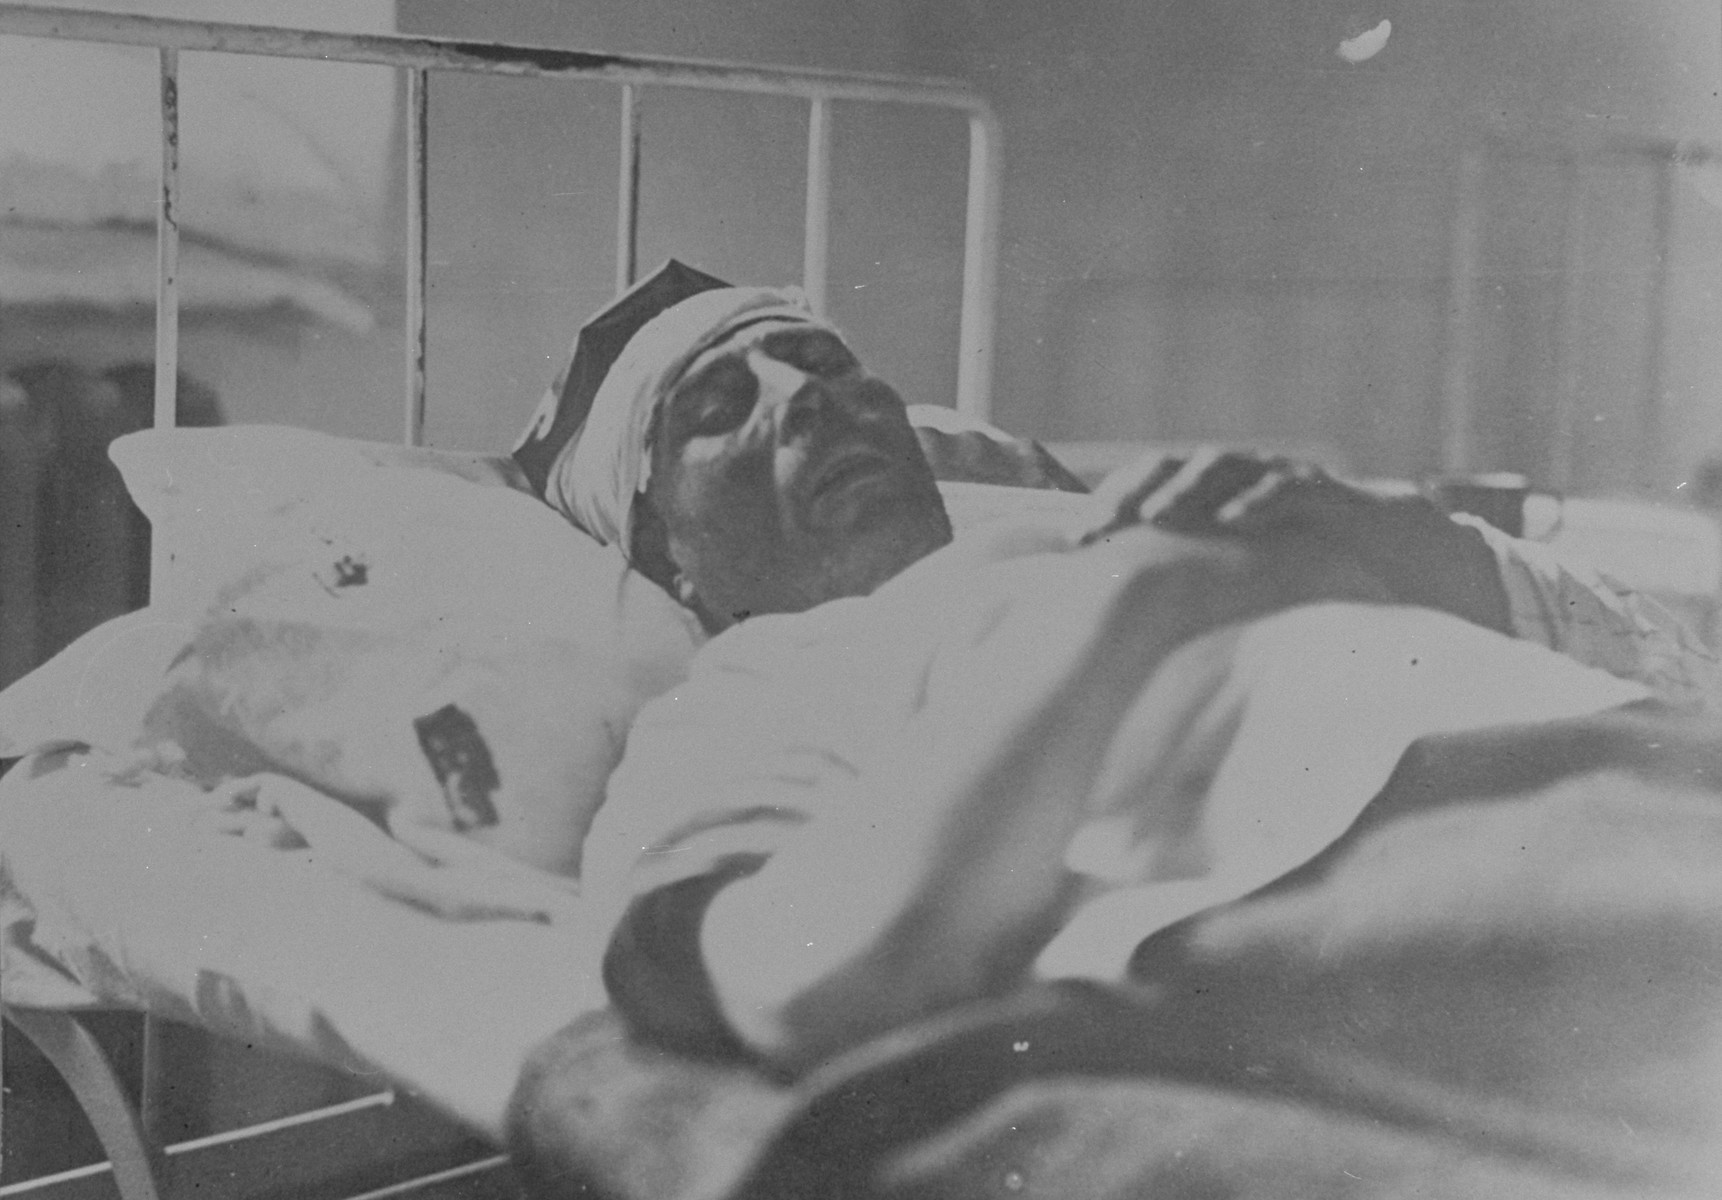 A Jew injured during the pogrom convaleces in a hospital.